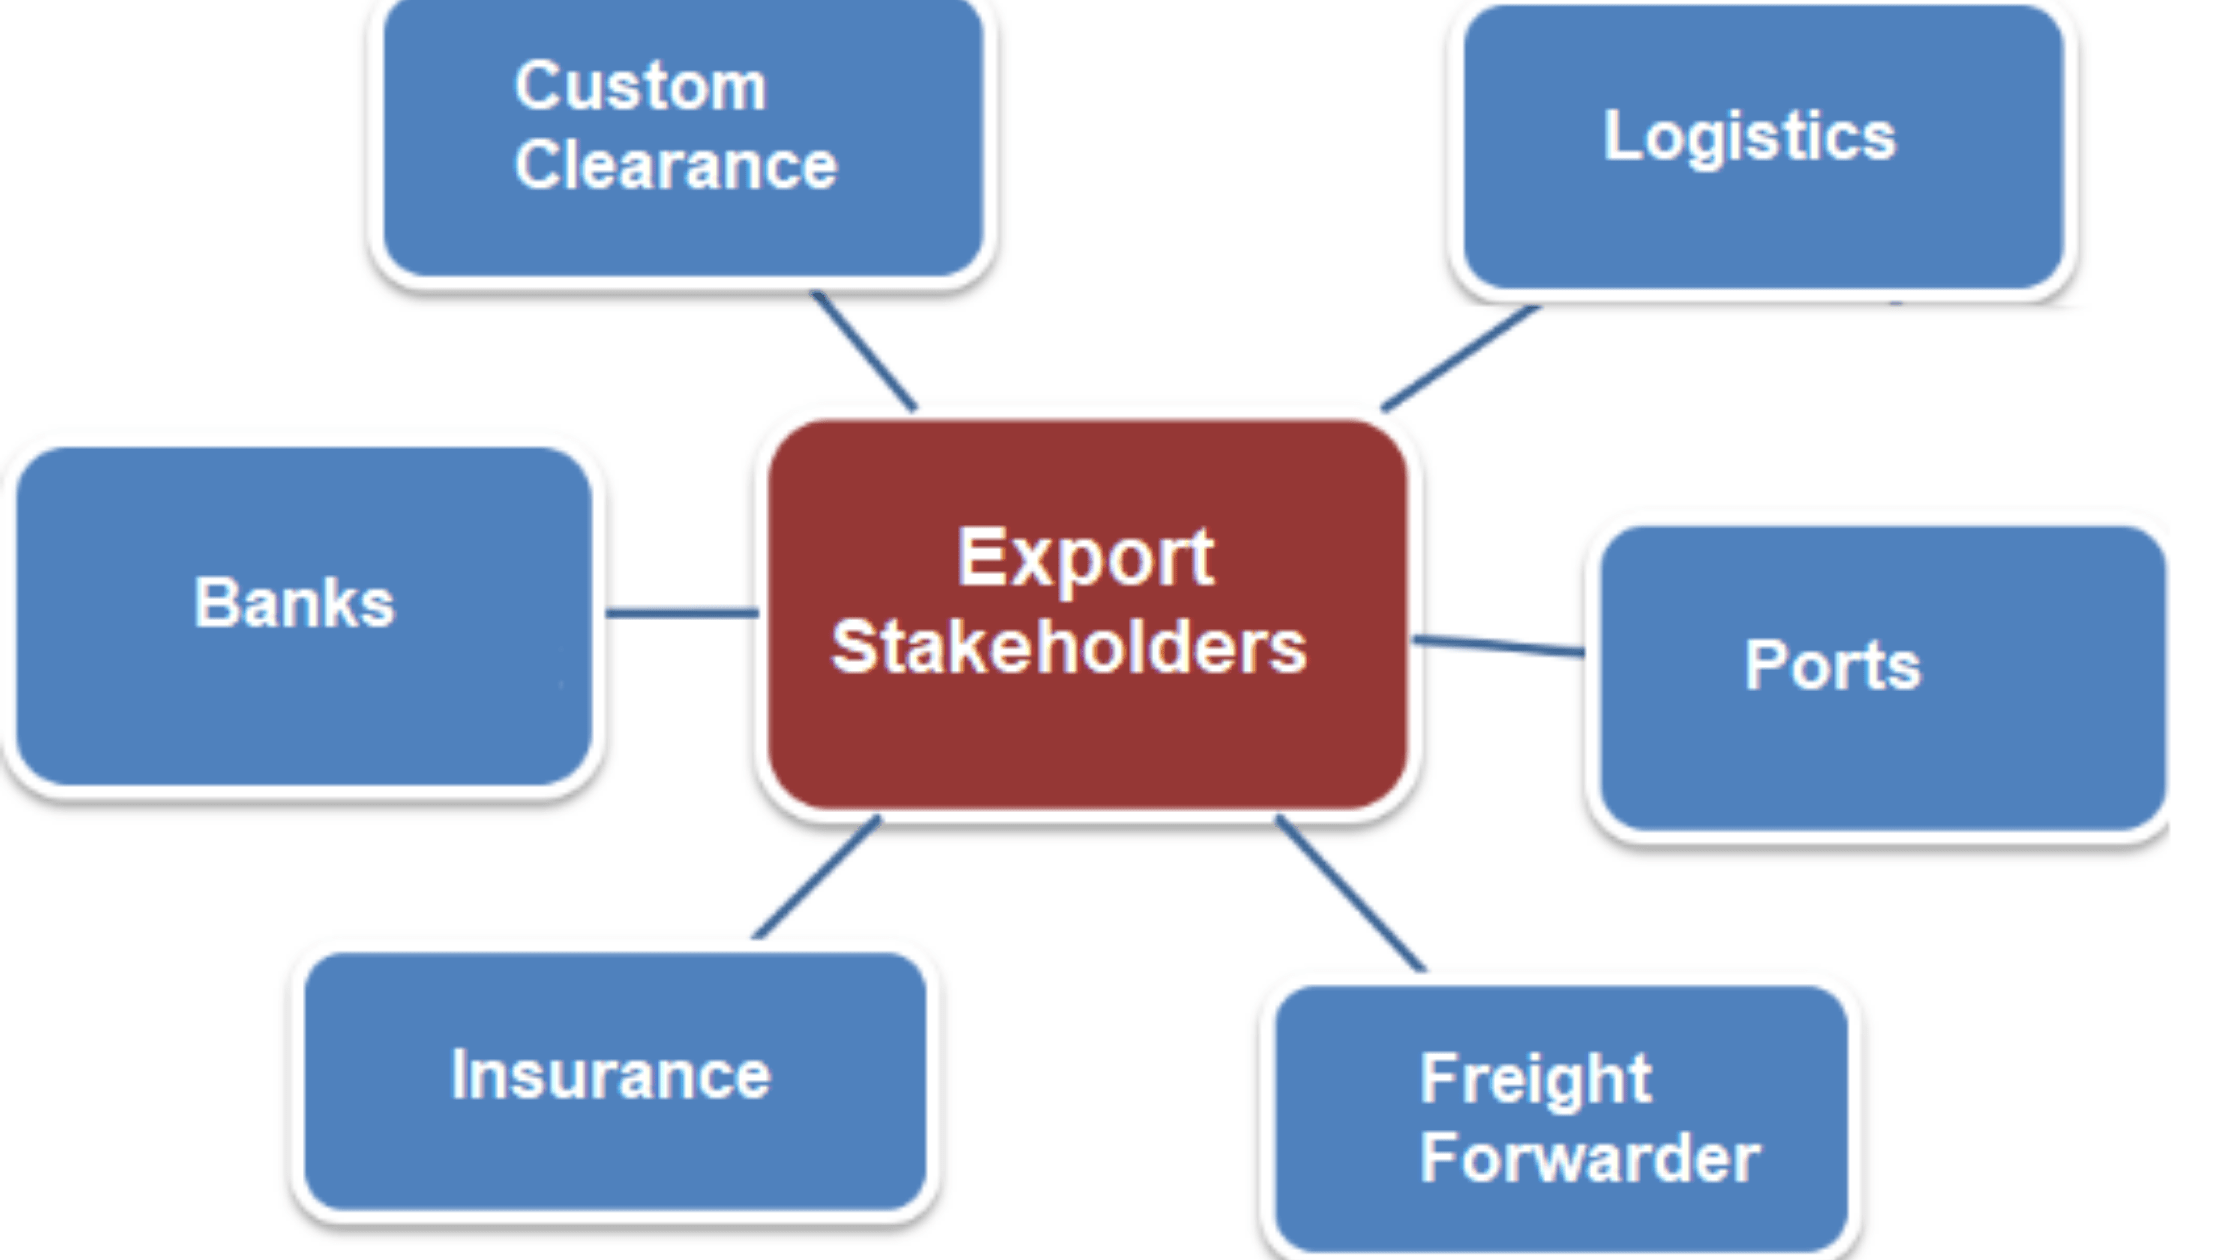 Stakeholders of Export Business